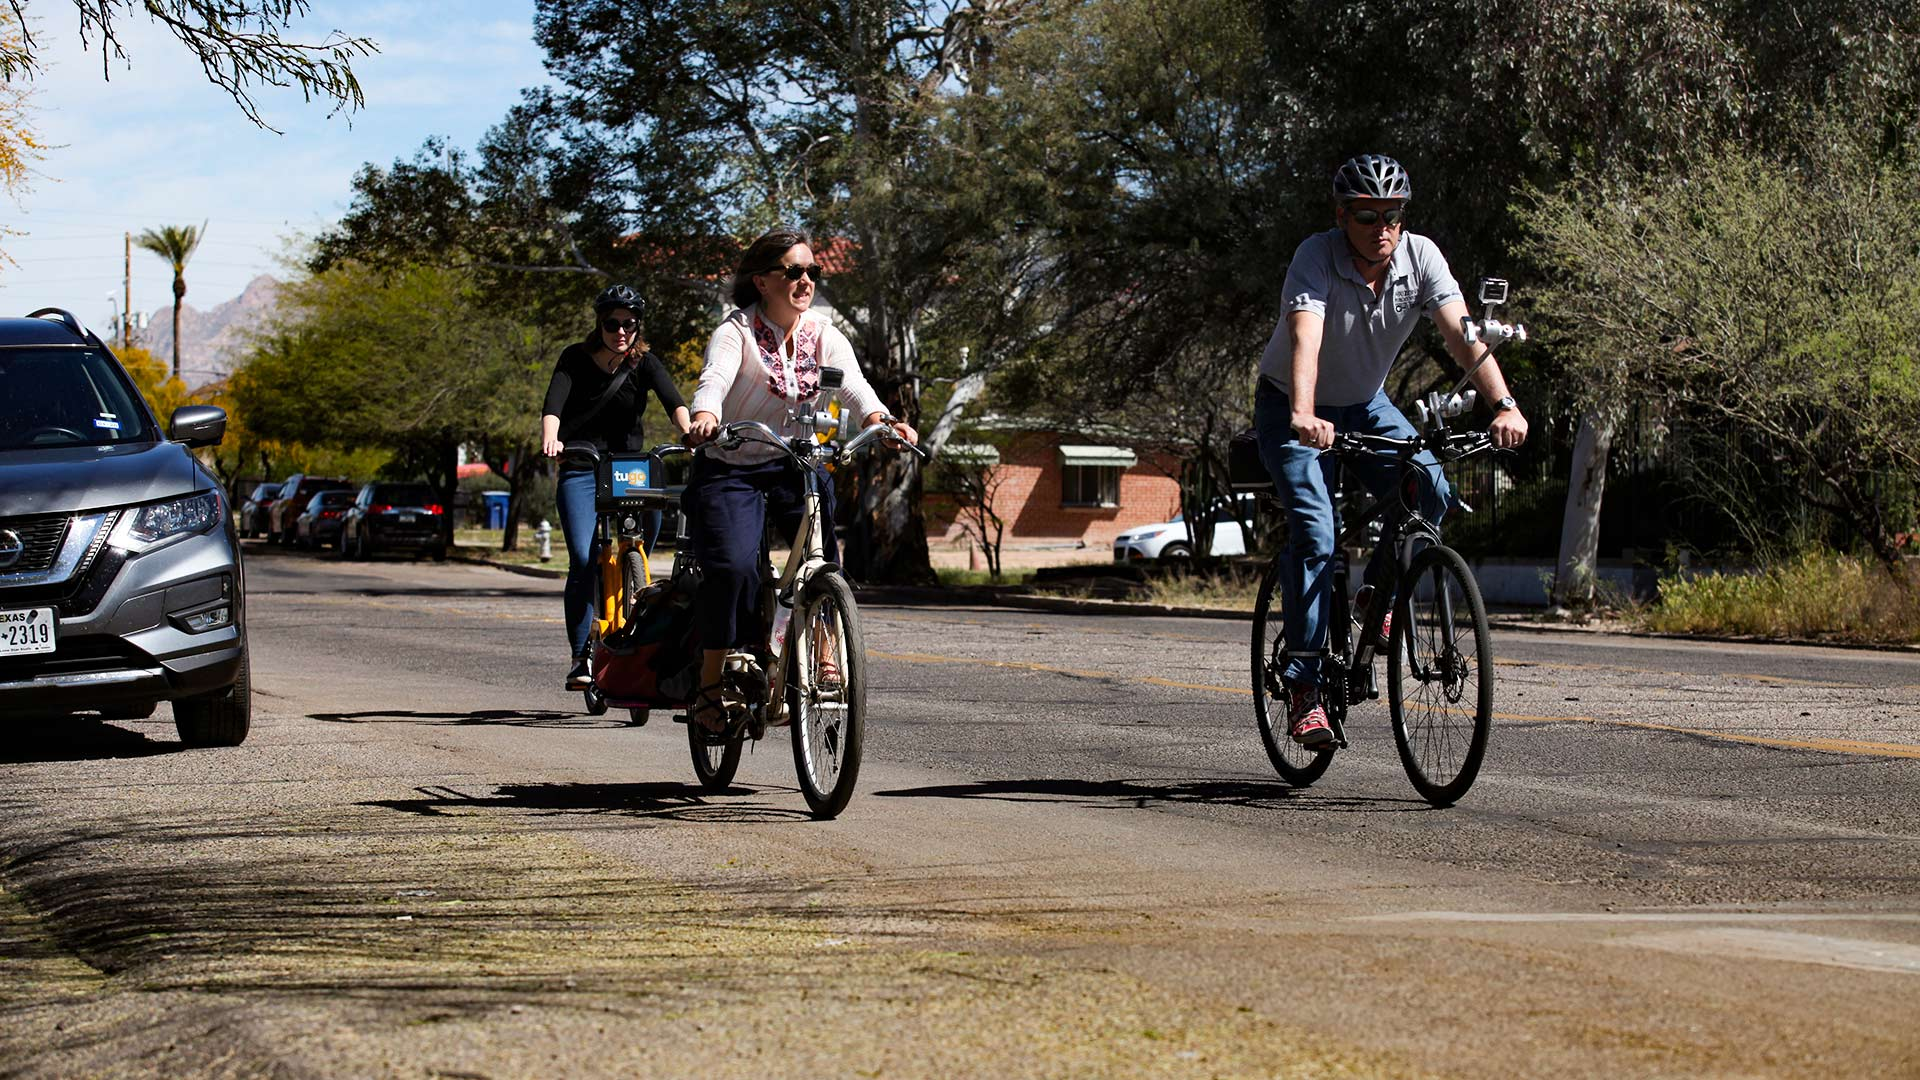 The Buzz staff rides the April 2019 Cyclovia route with Kylie Walzak of the Living Streets Alliance. April 2019